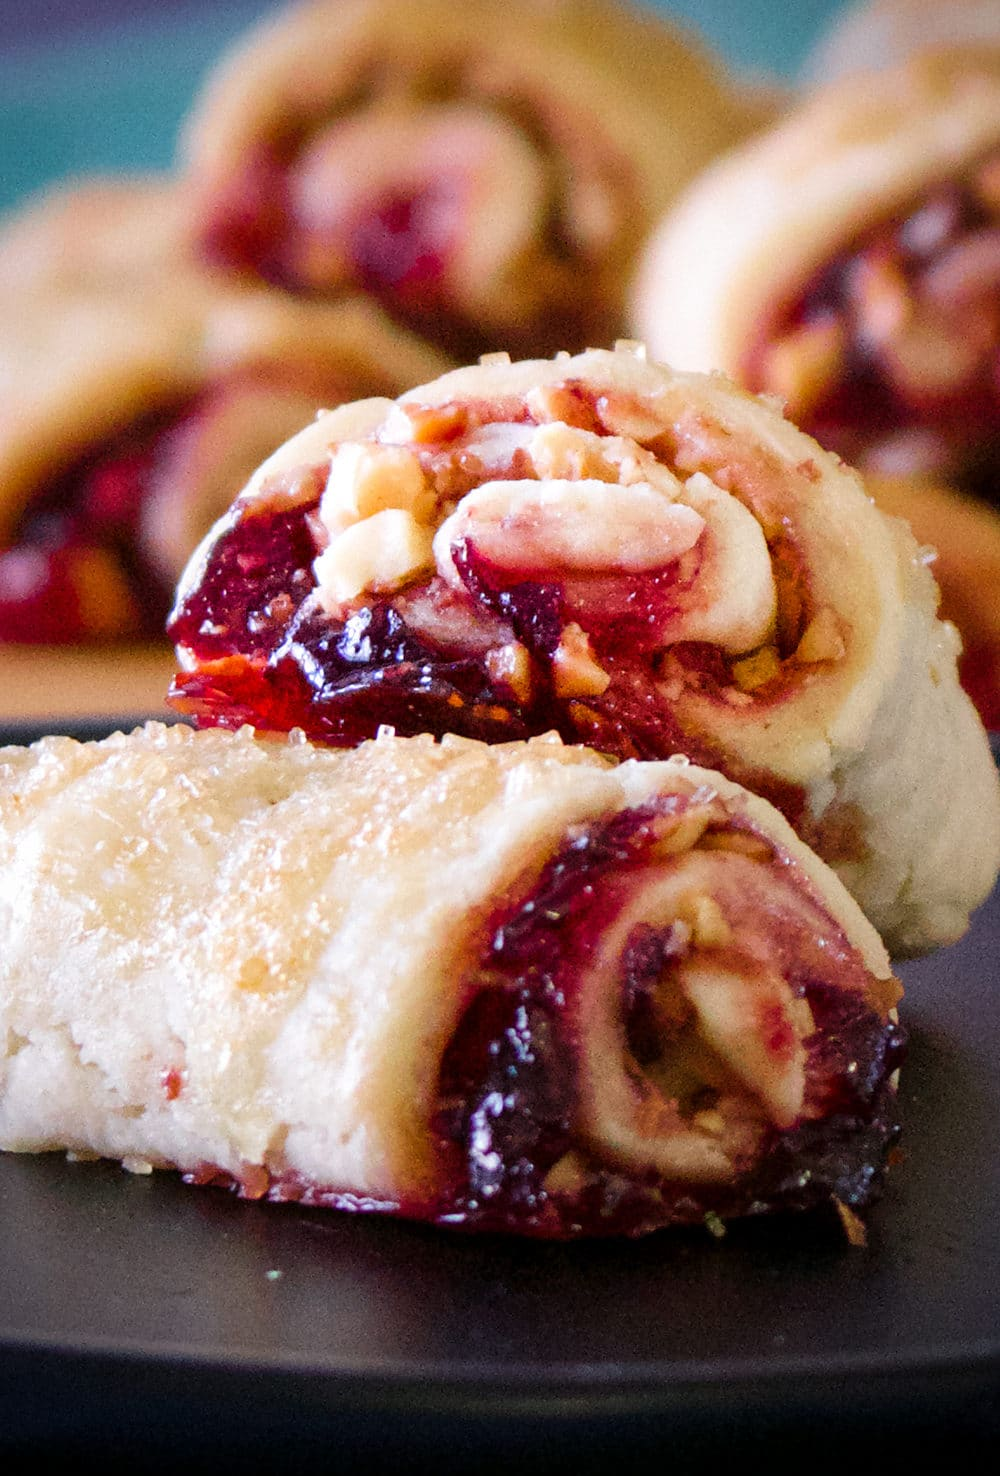 A plate of two cherry almond rugelach cookies.